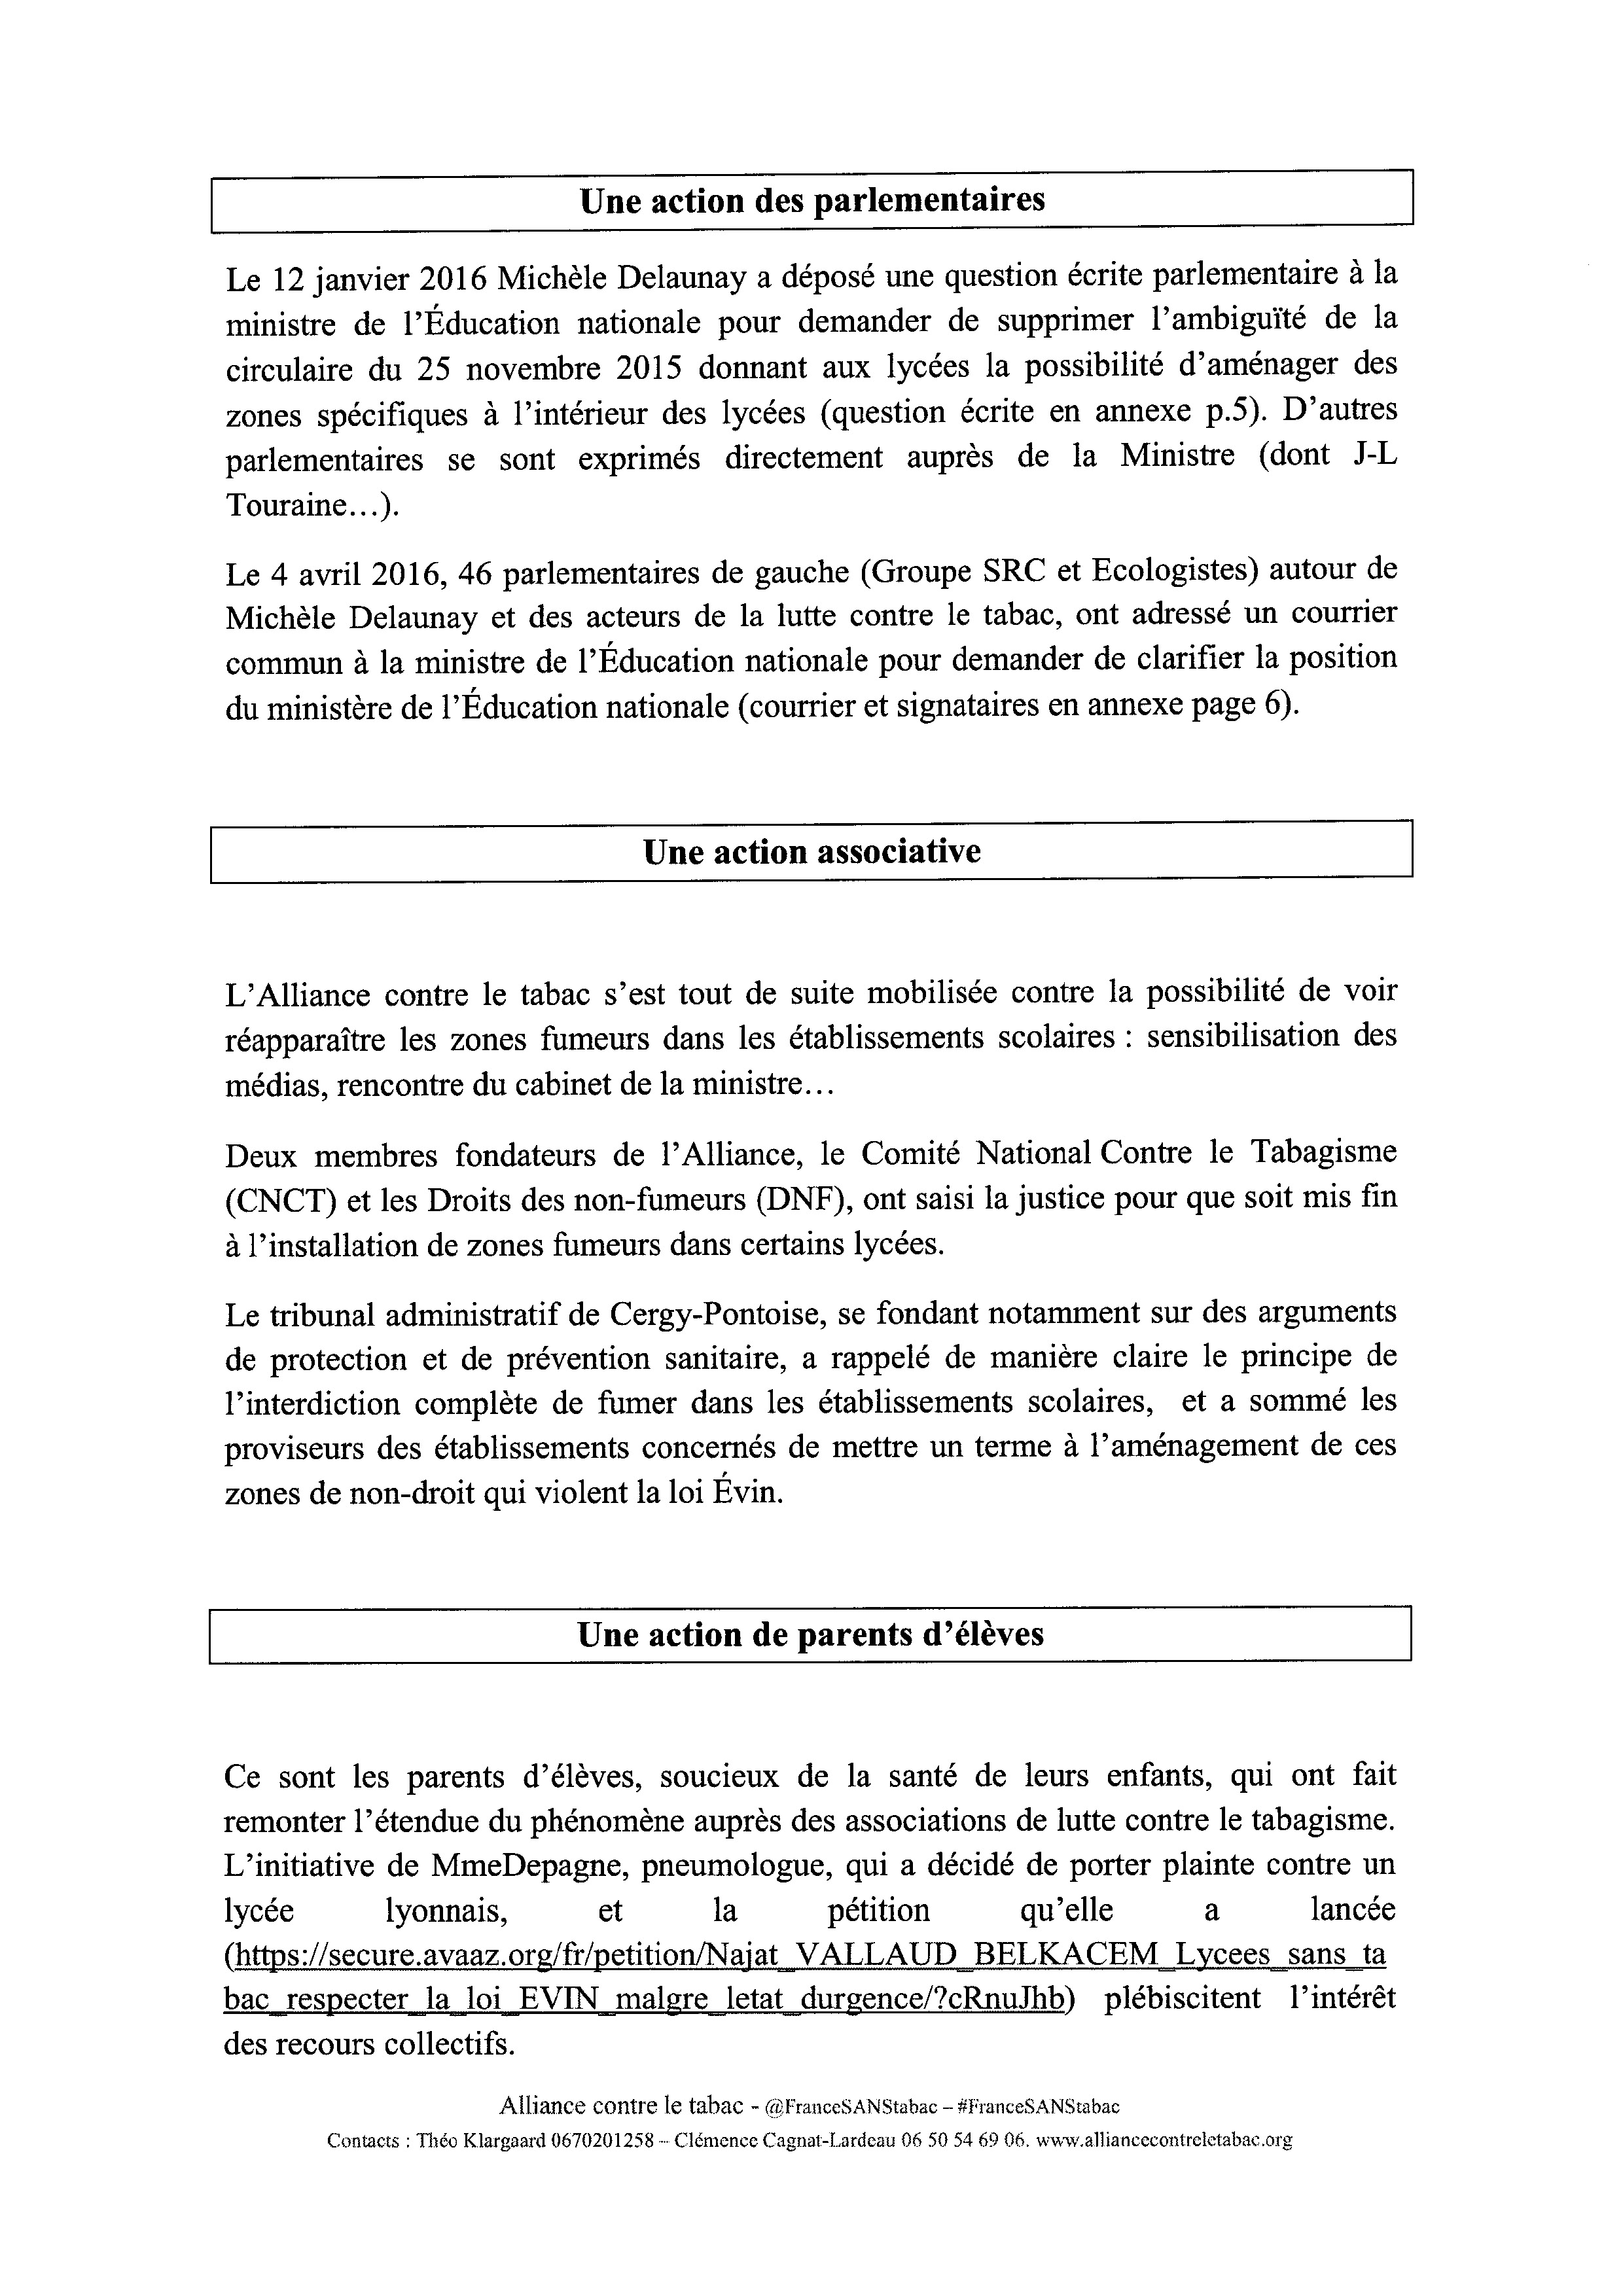 Alliance-DP_dossier-point-presse-lycees-sans-tabac-27avr2016_Page_03.jpg